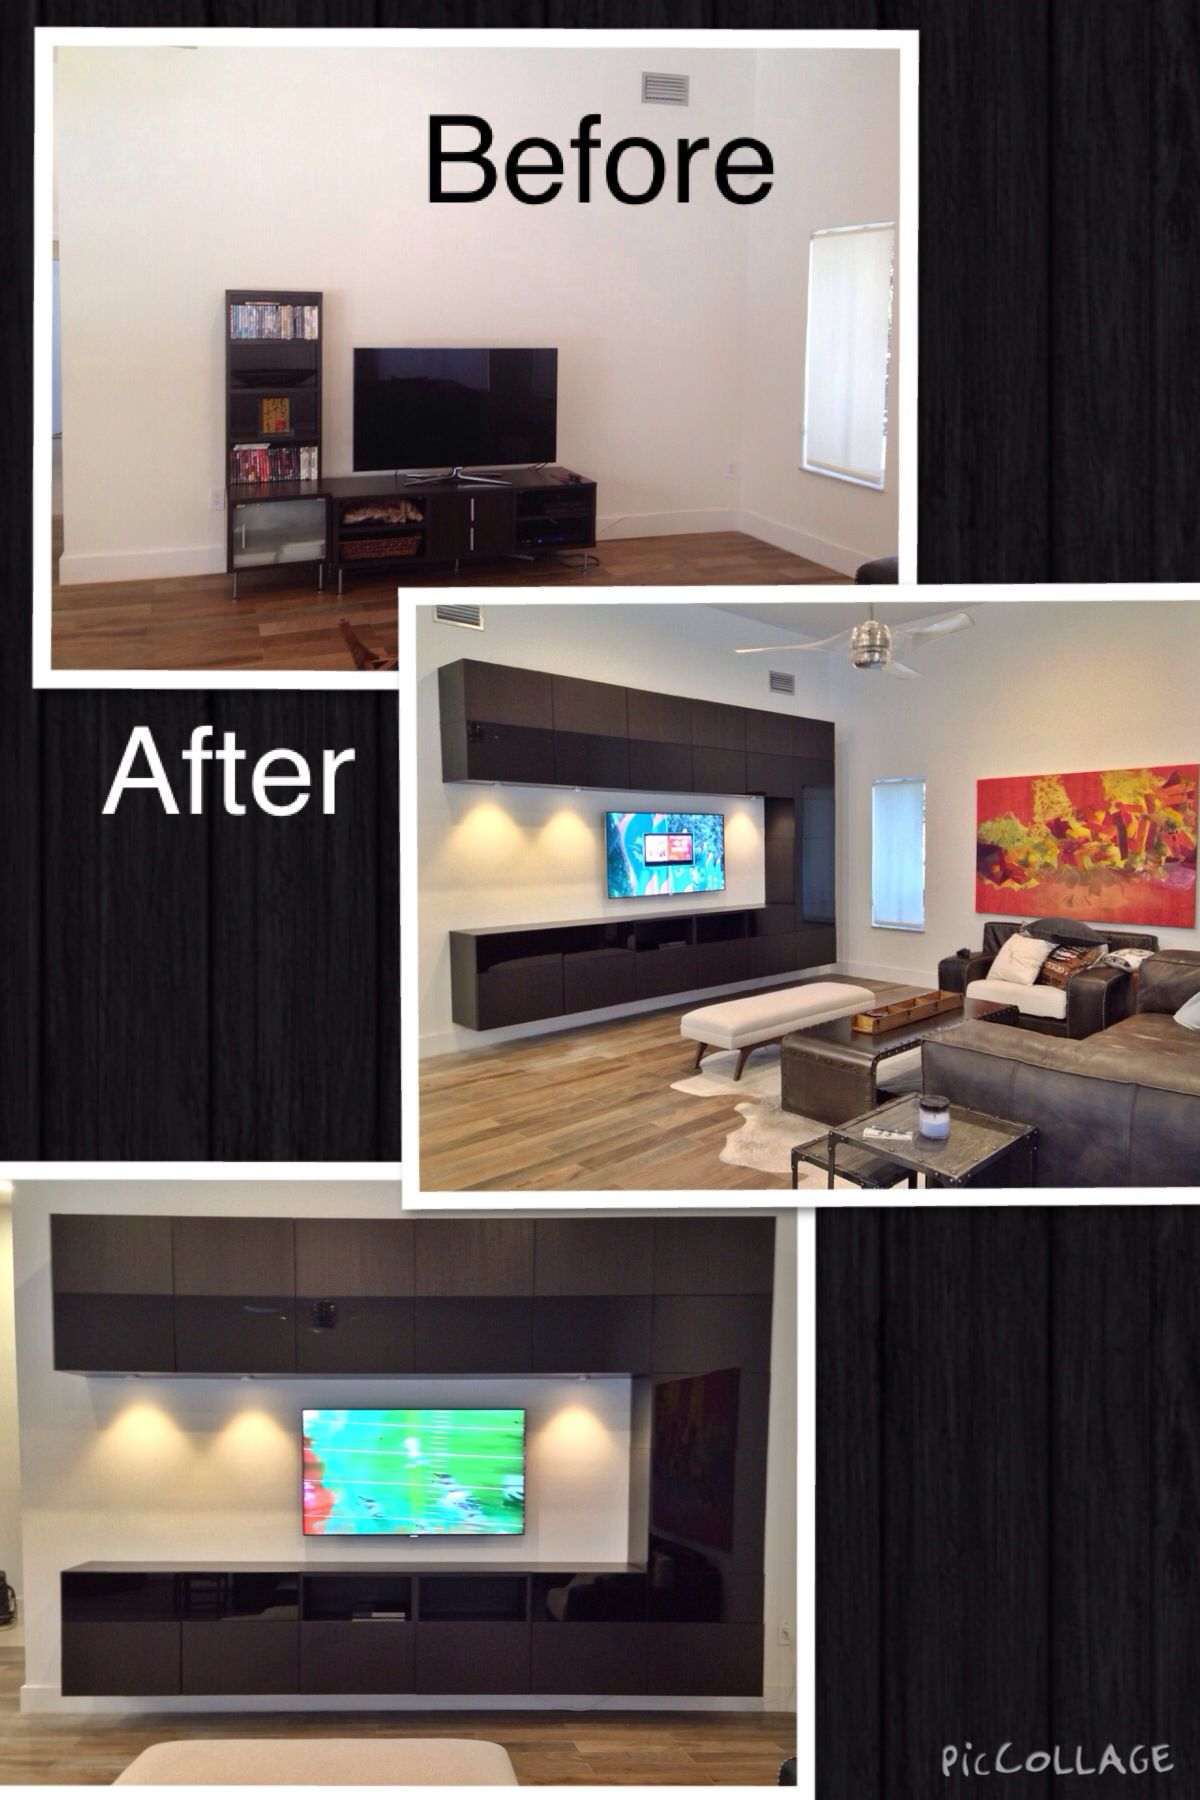 Ikea Besta TV entertainment center/wall unit | Recent Projects ...